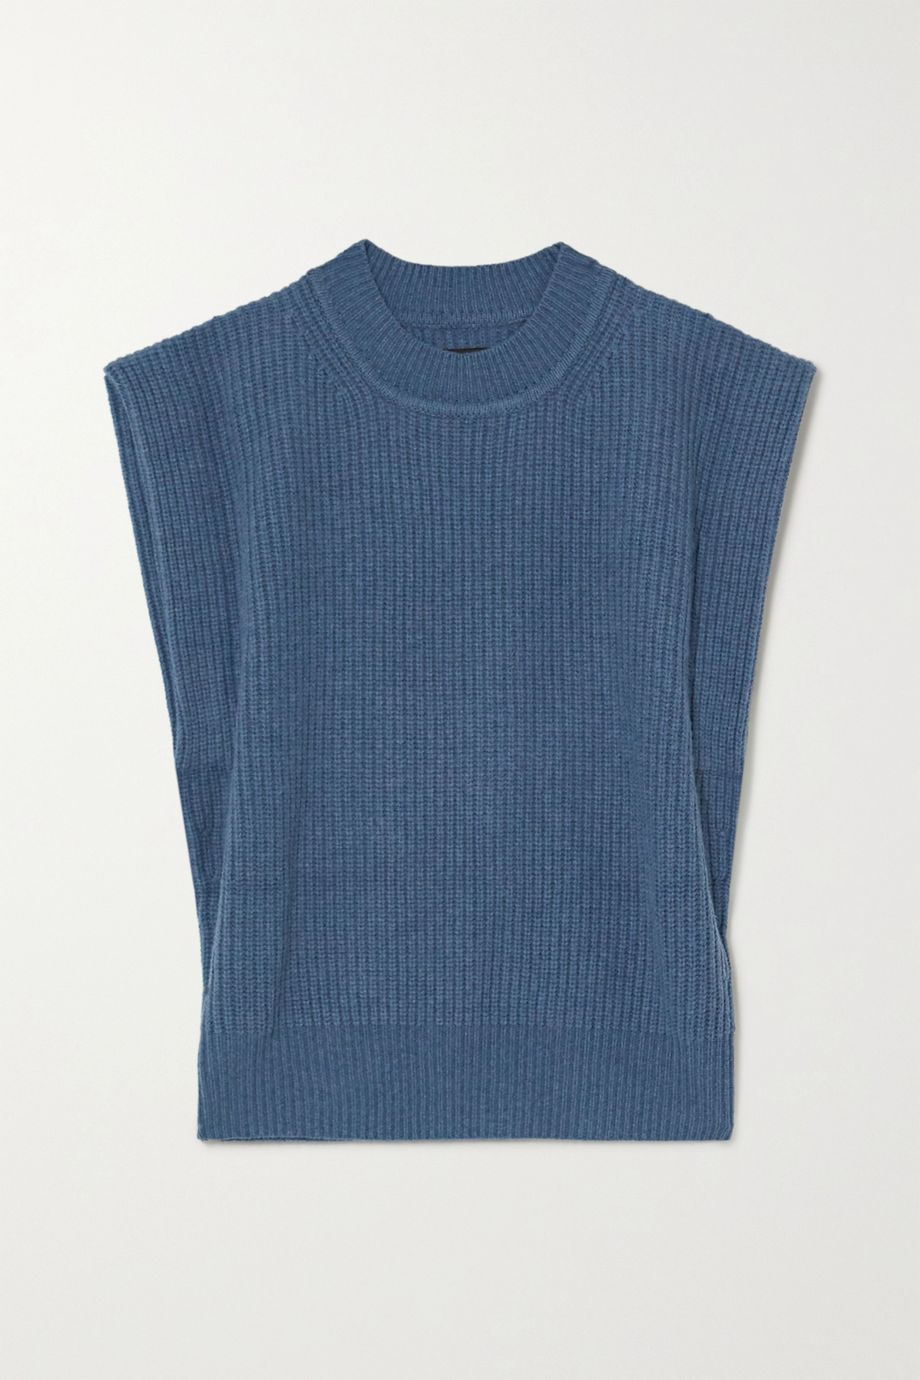 Isabel Marant Bridget ribbed cashmere and wool-blend sweater